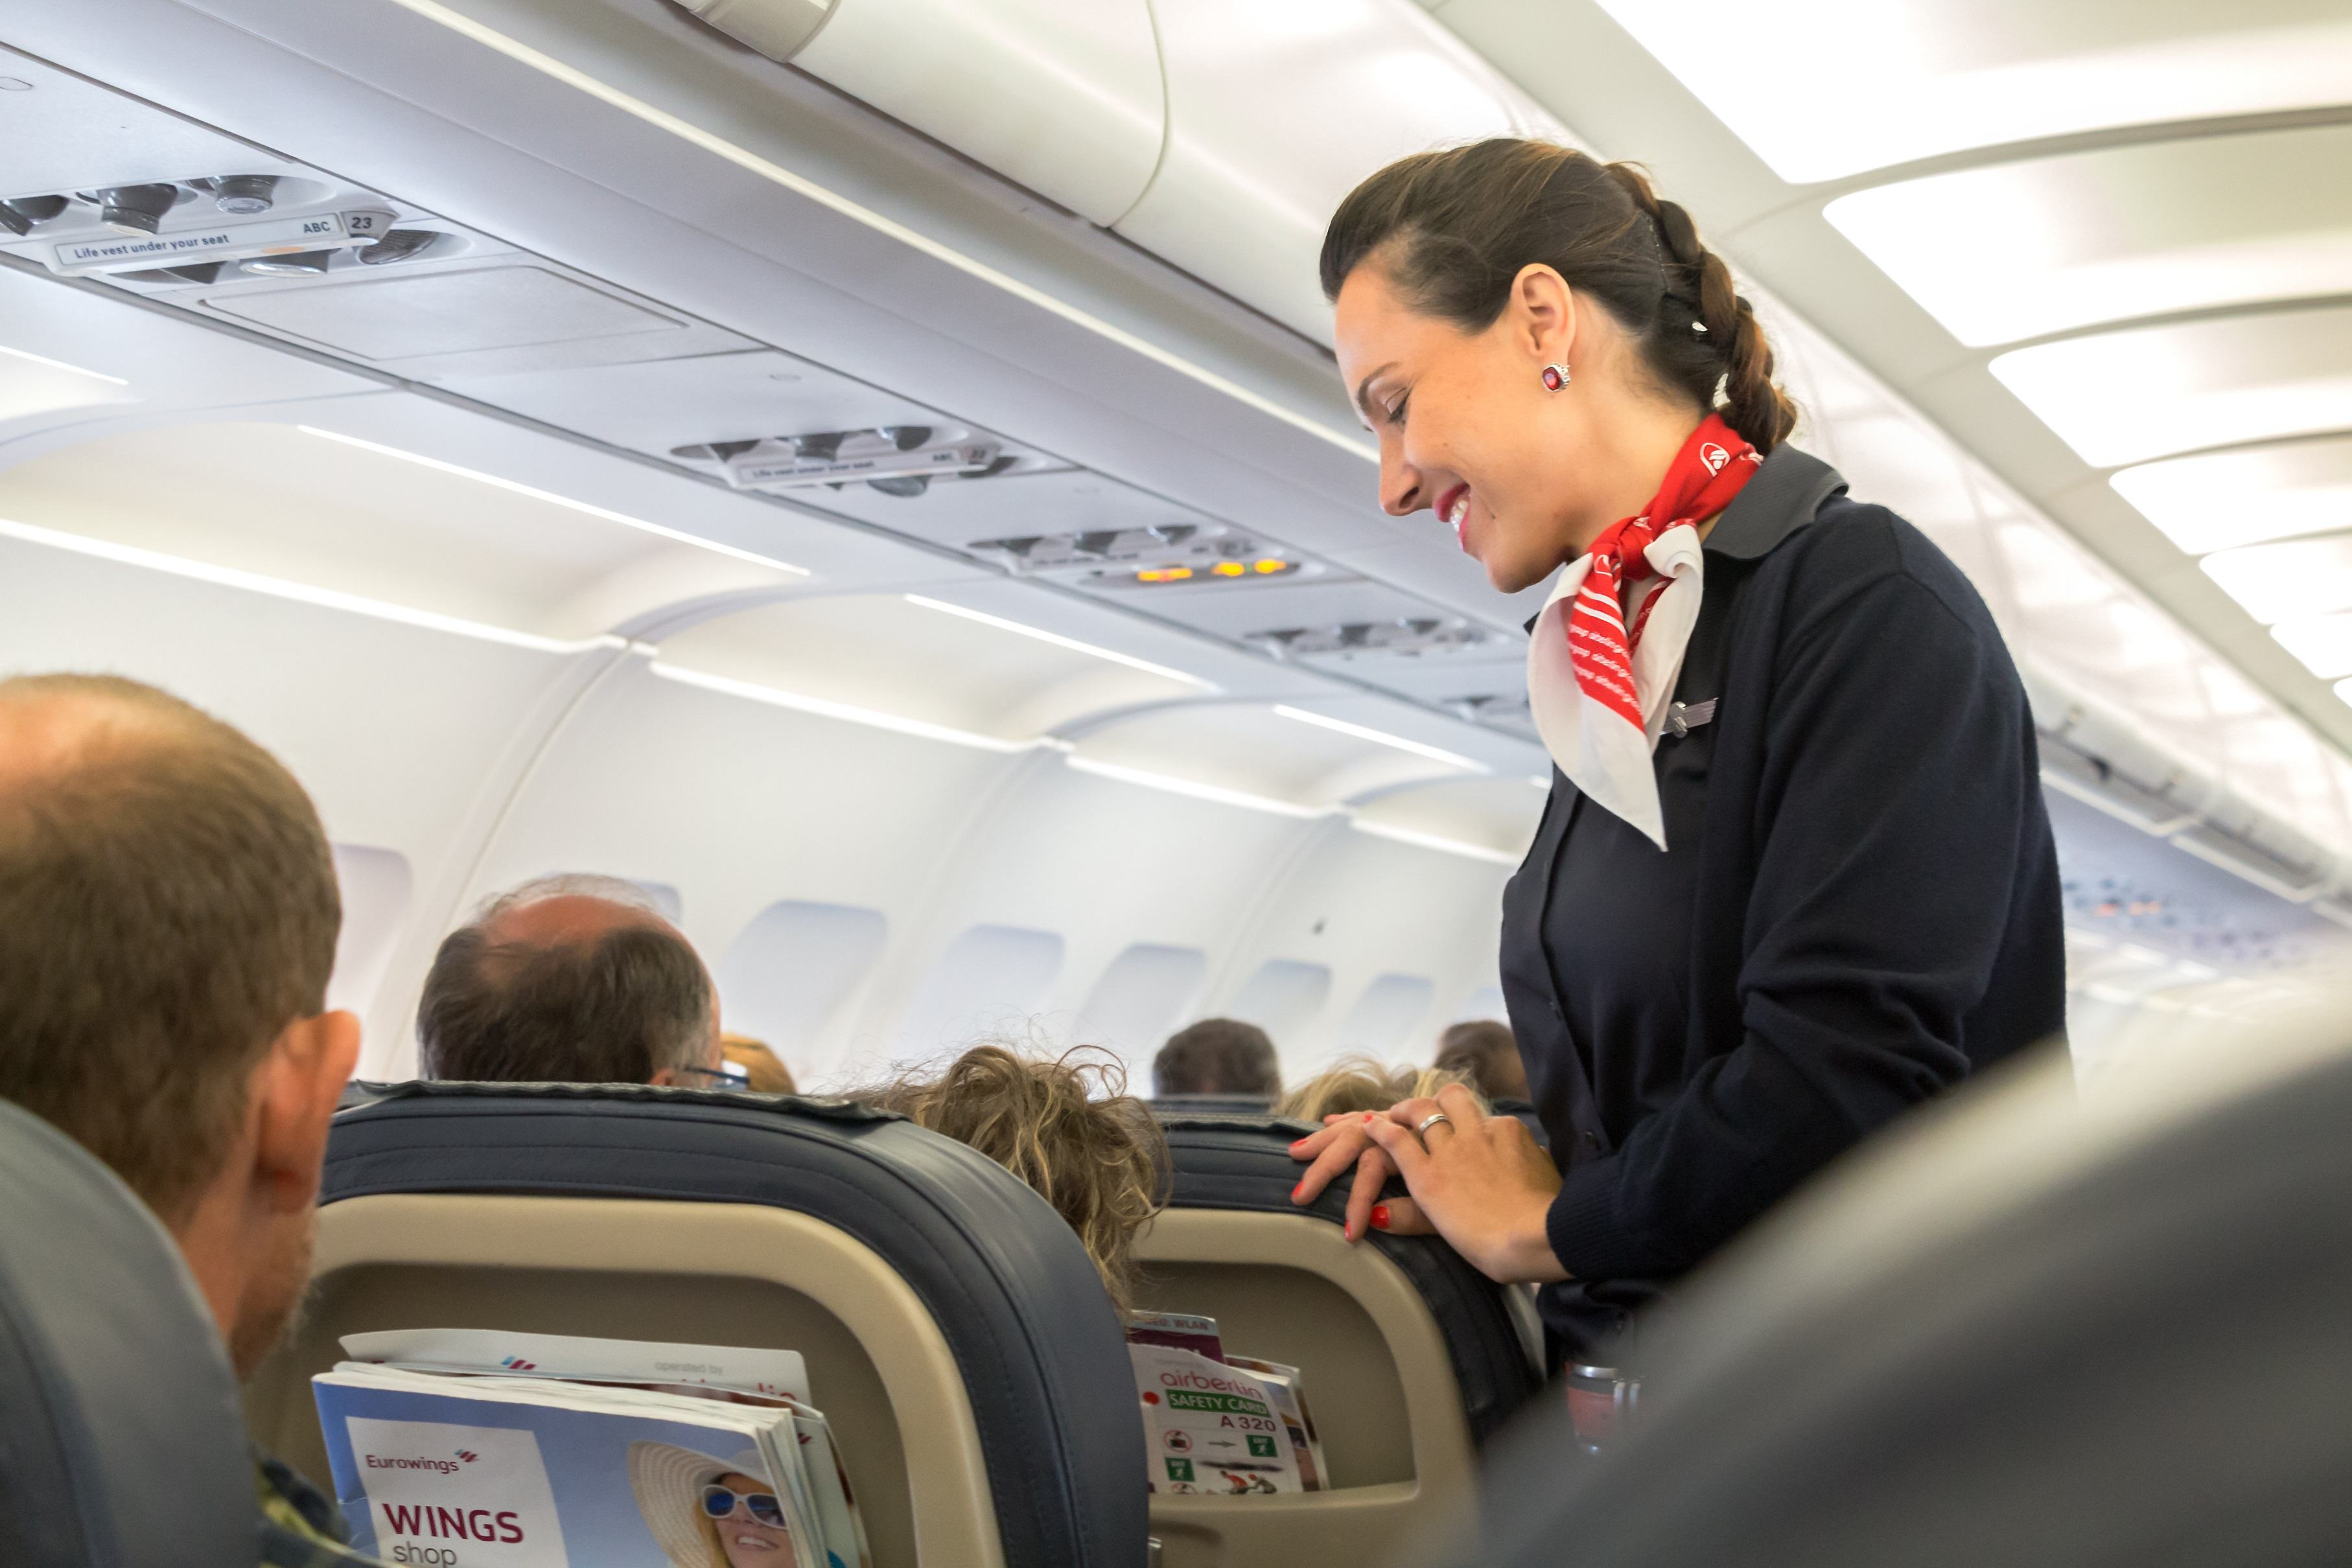 Stewardess talking to passenger